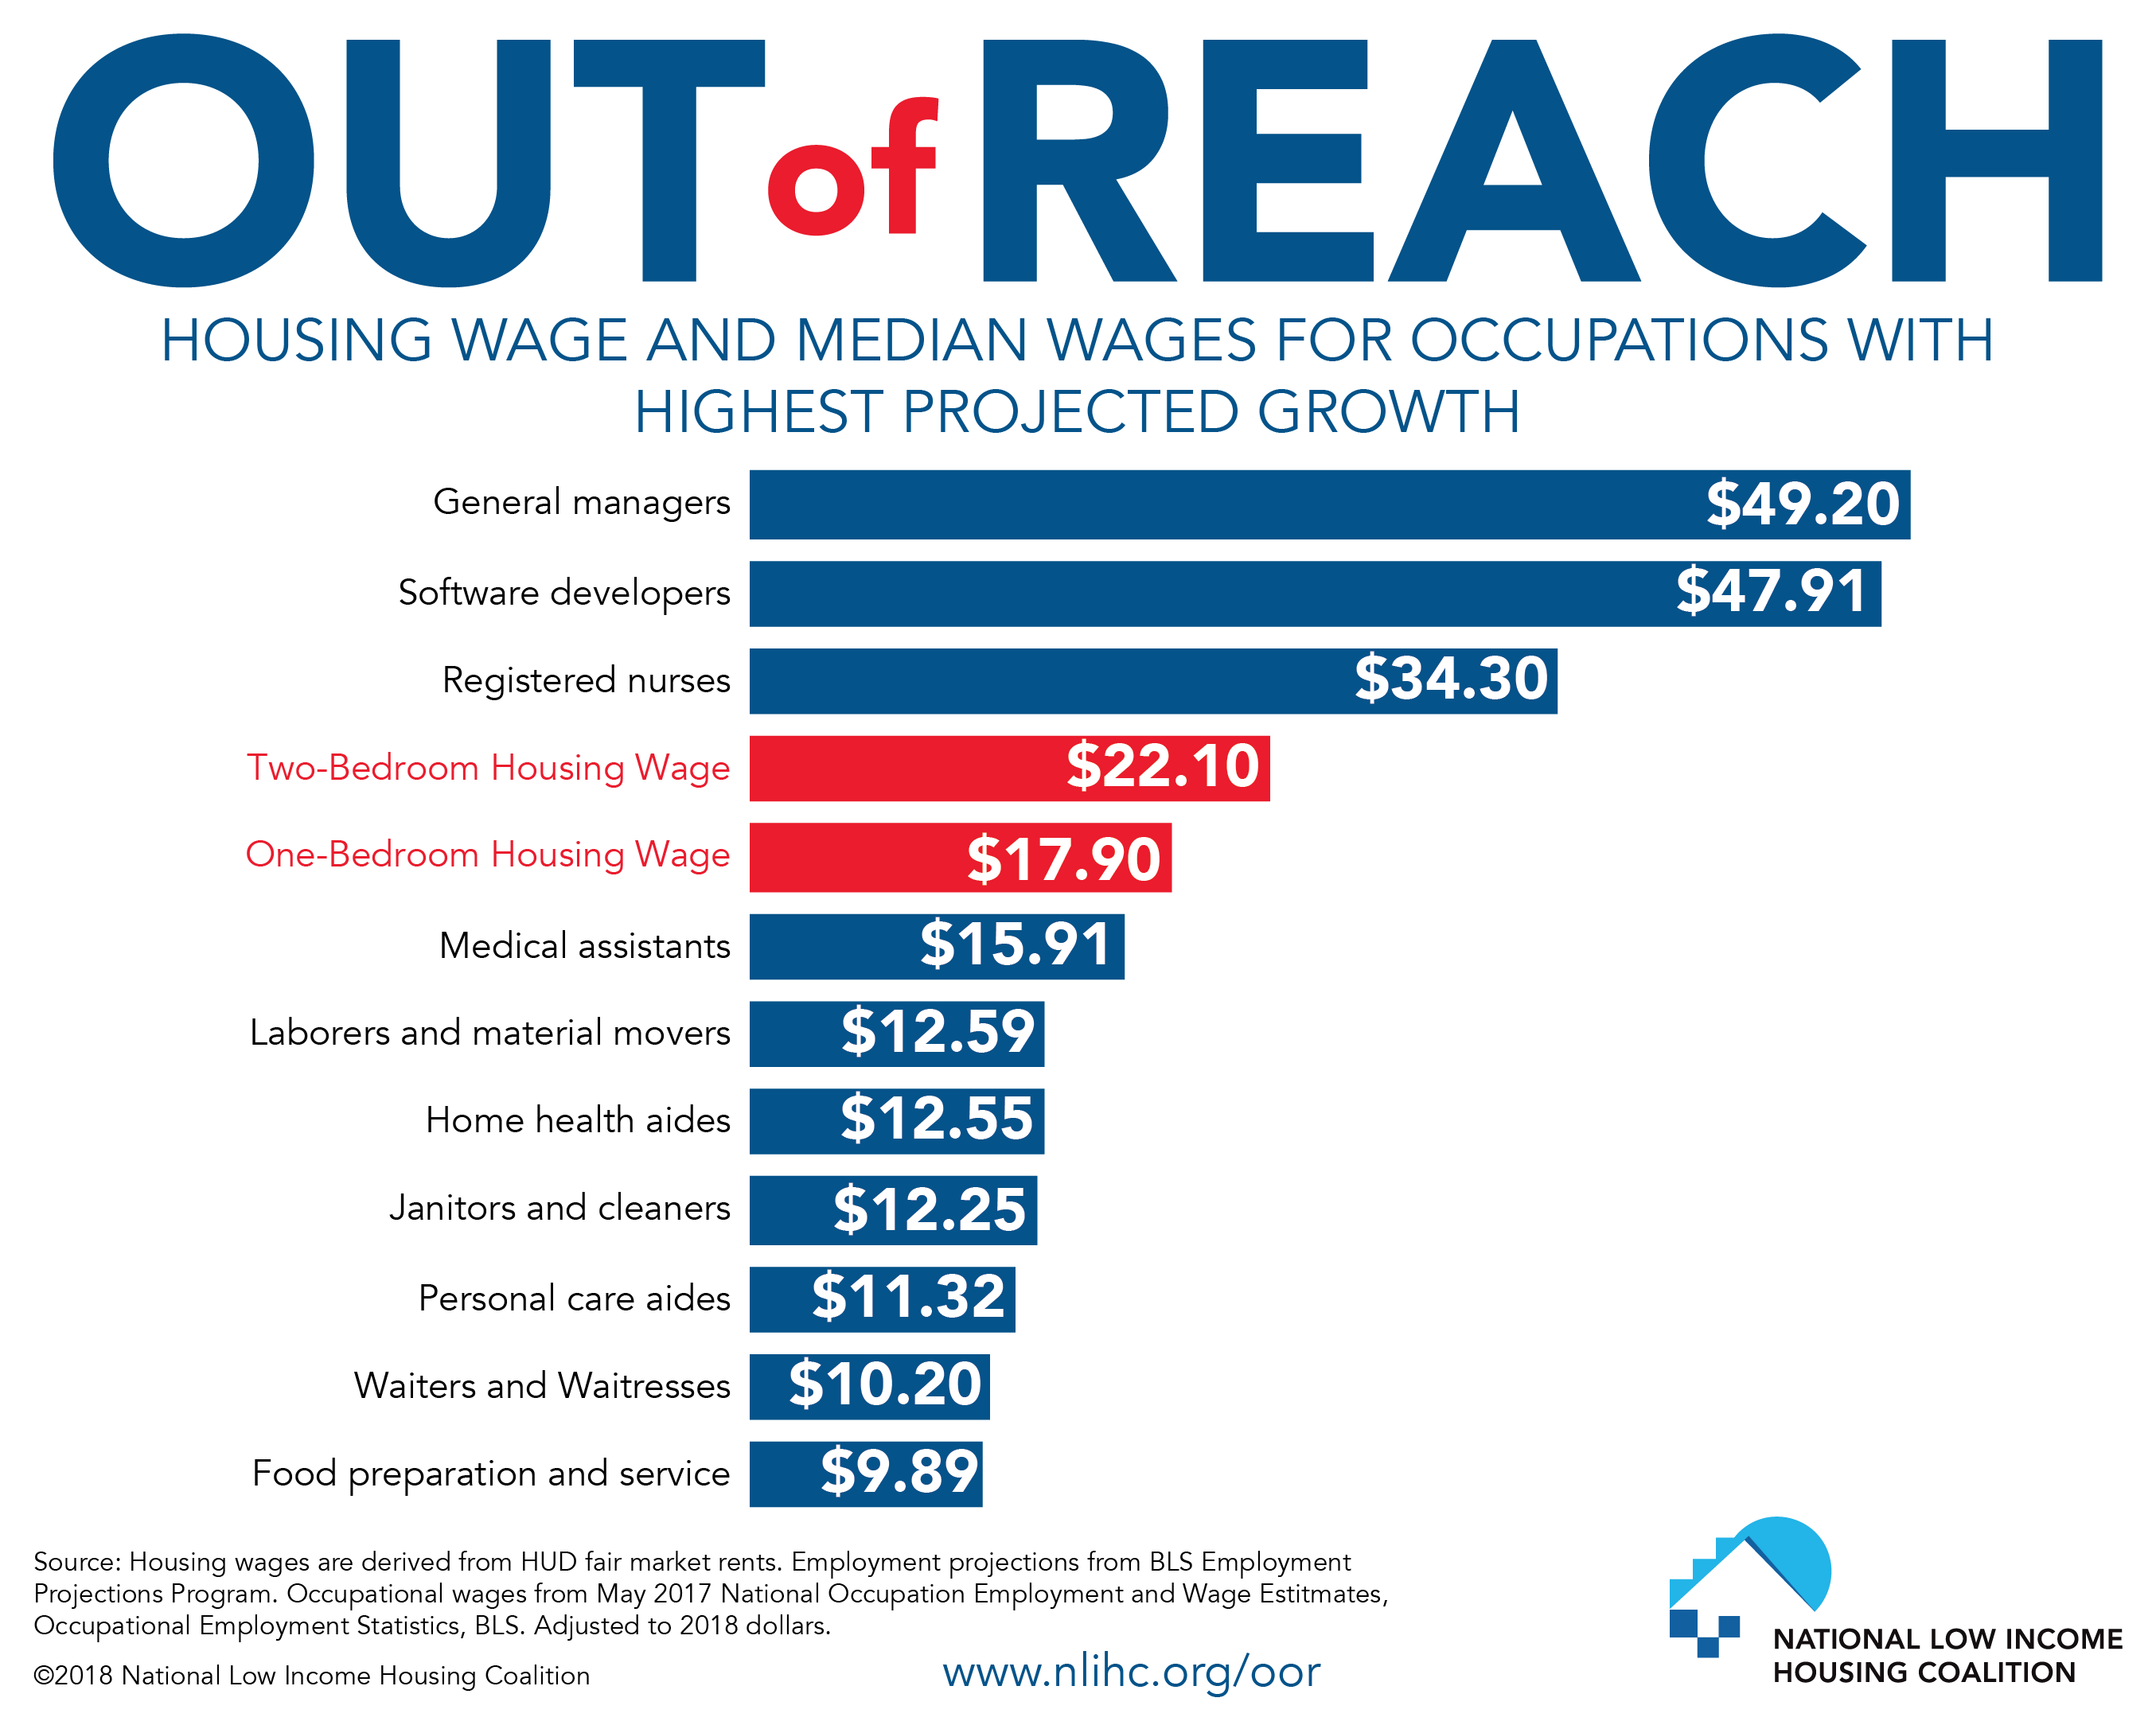 Housing Wage and Media Wates for Occupations with Highest Projected Growth